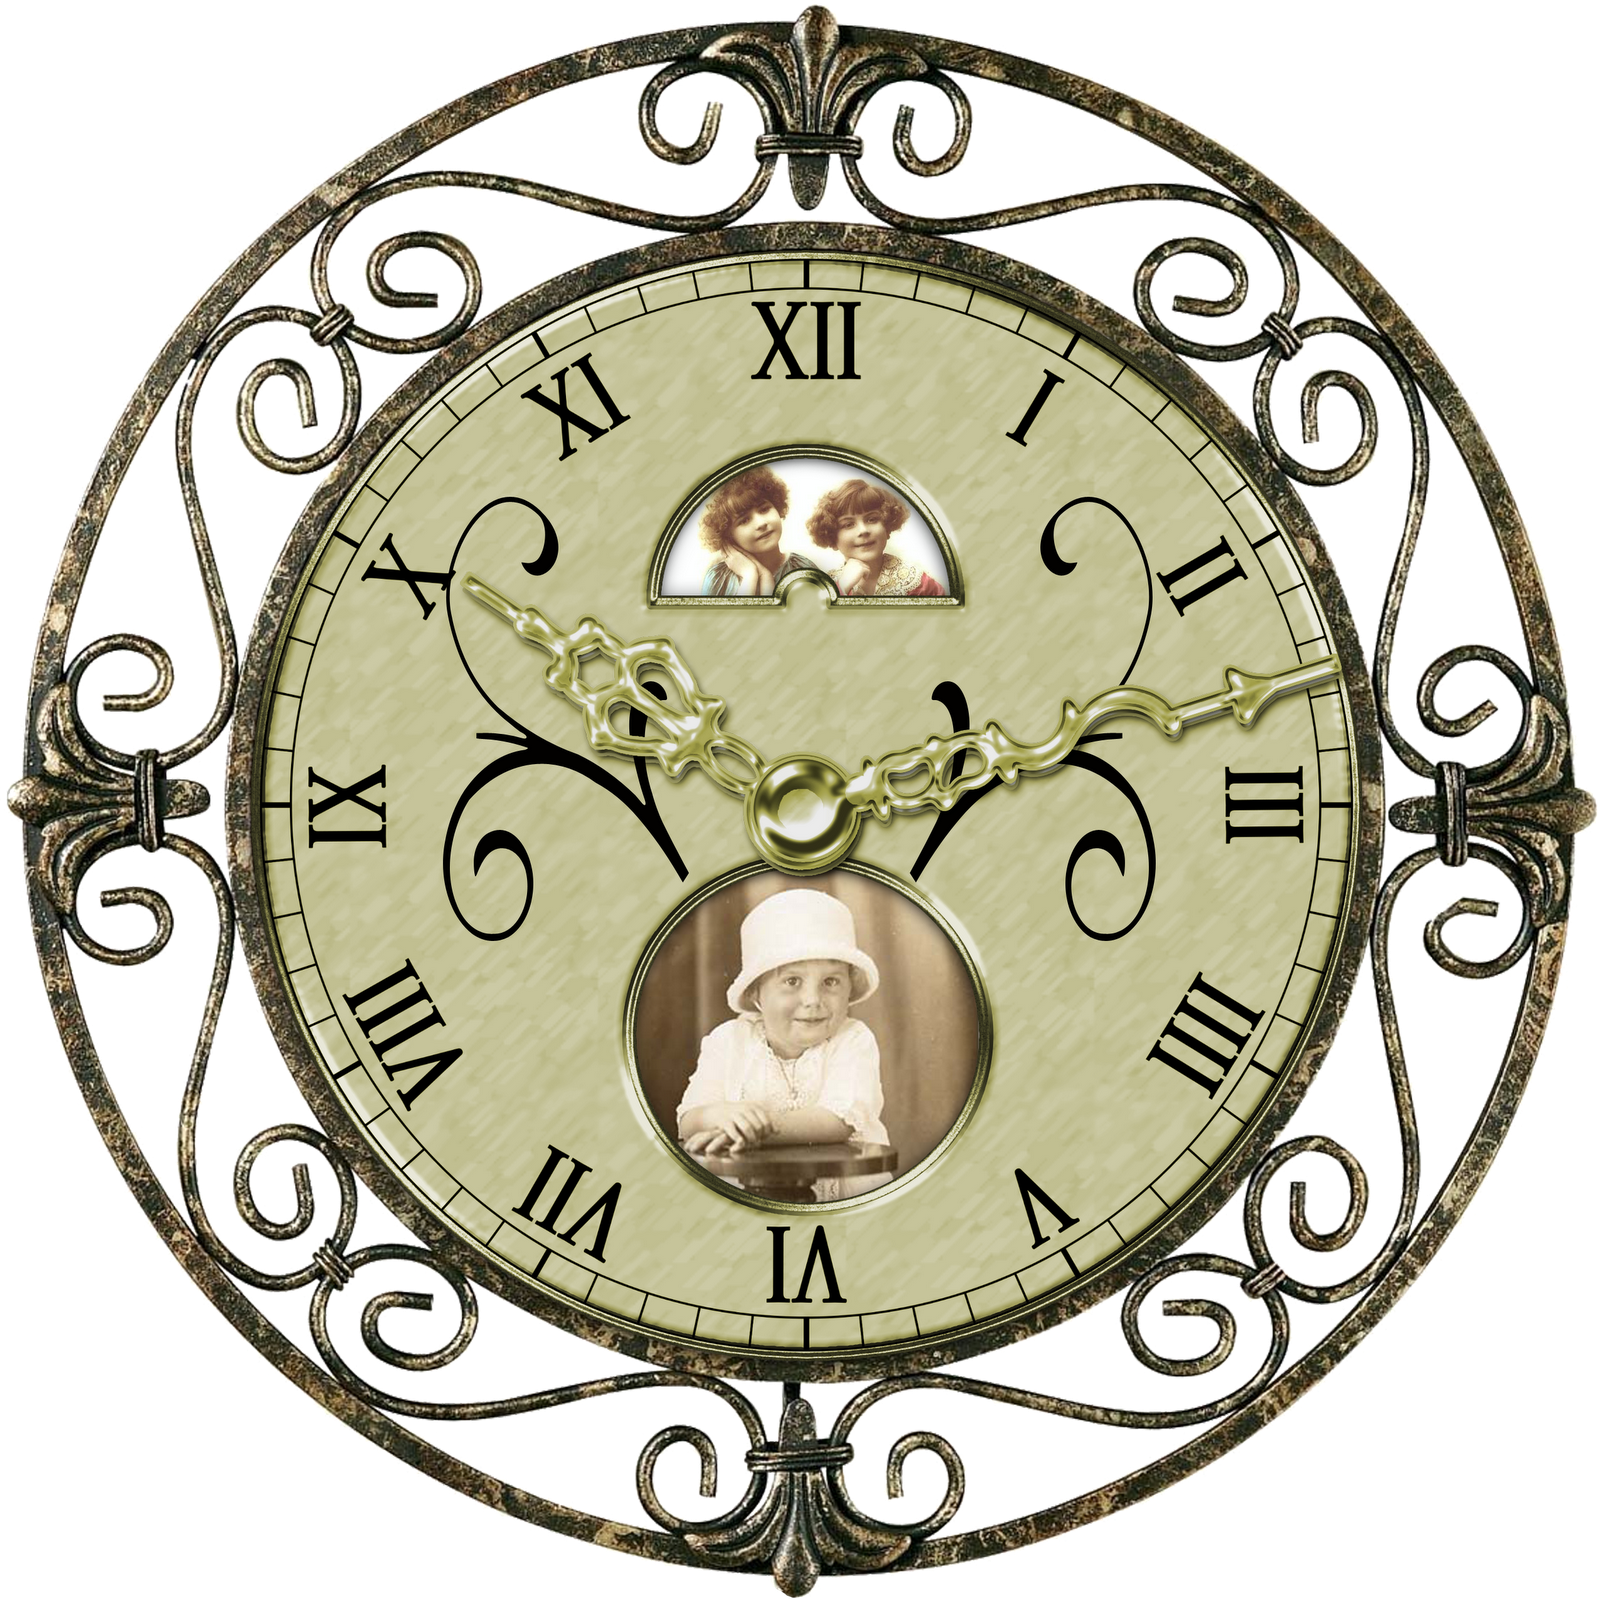 Boutique panda free images. Clock clipart girly